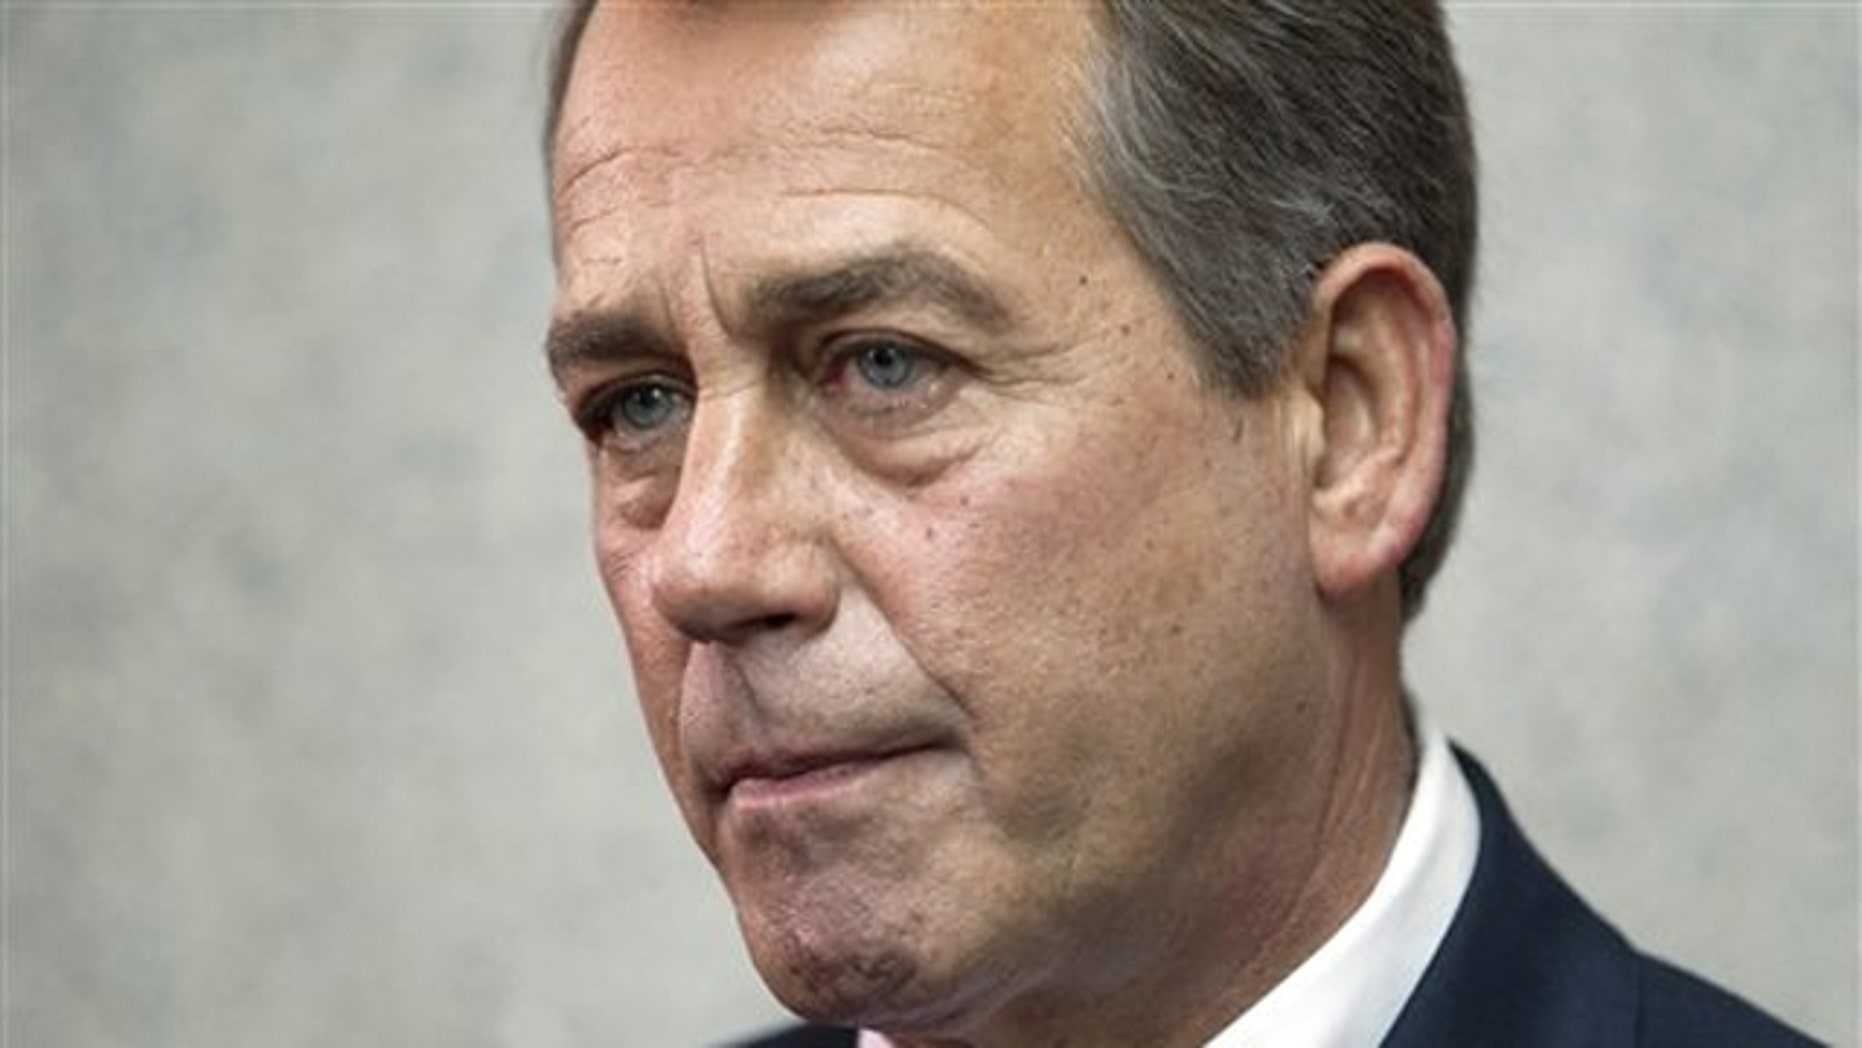 House Speaker John Boehner pauses during a news conference on Capitol Hill April 15.